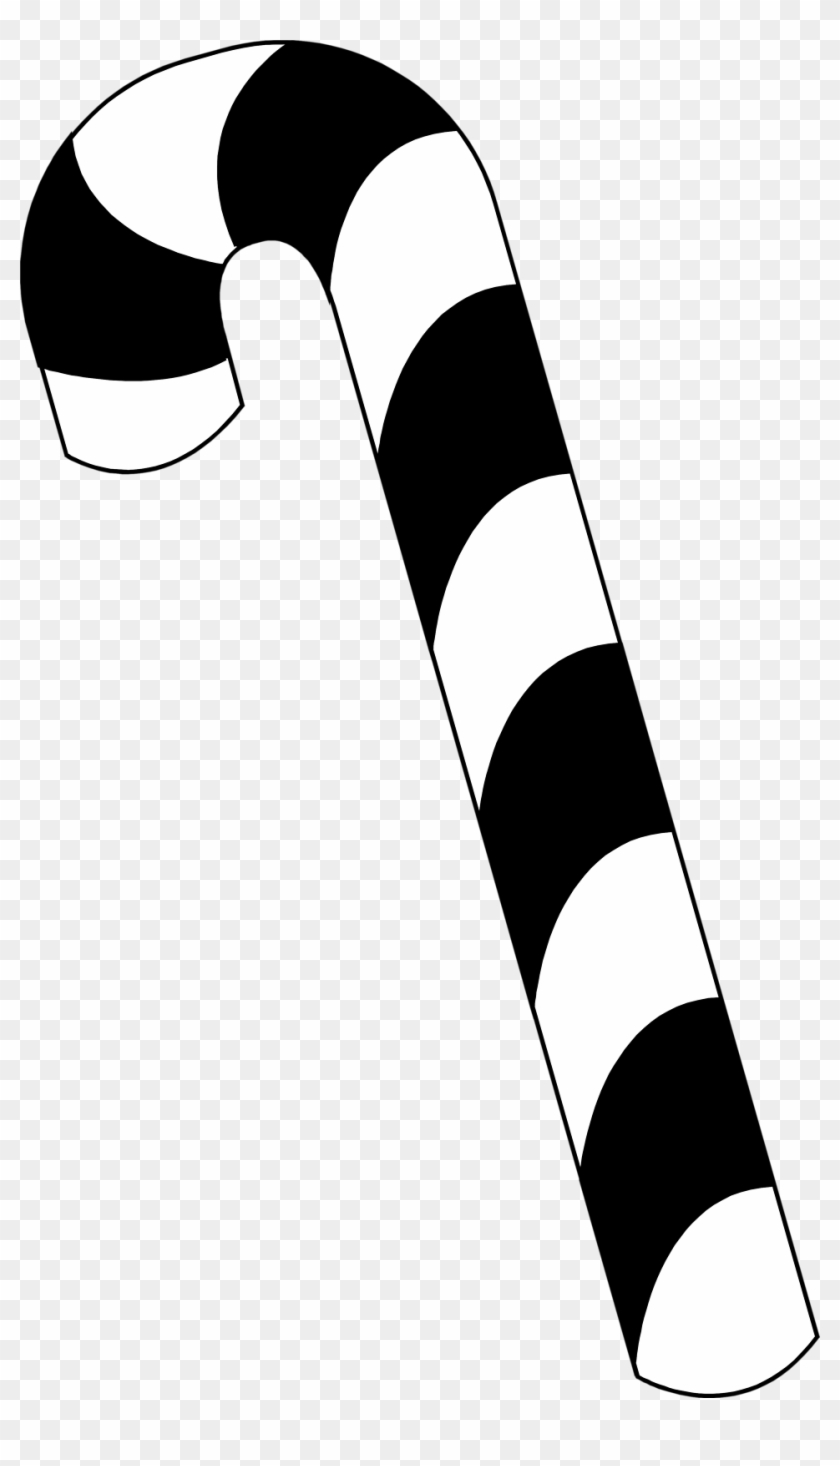 Jesus candy cane clipart black and white image royalty free download Download Free png Candy Cane Clipart Black And White Candy Cane ... image royalty free download